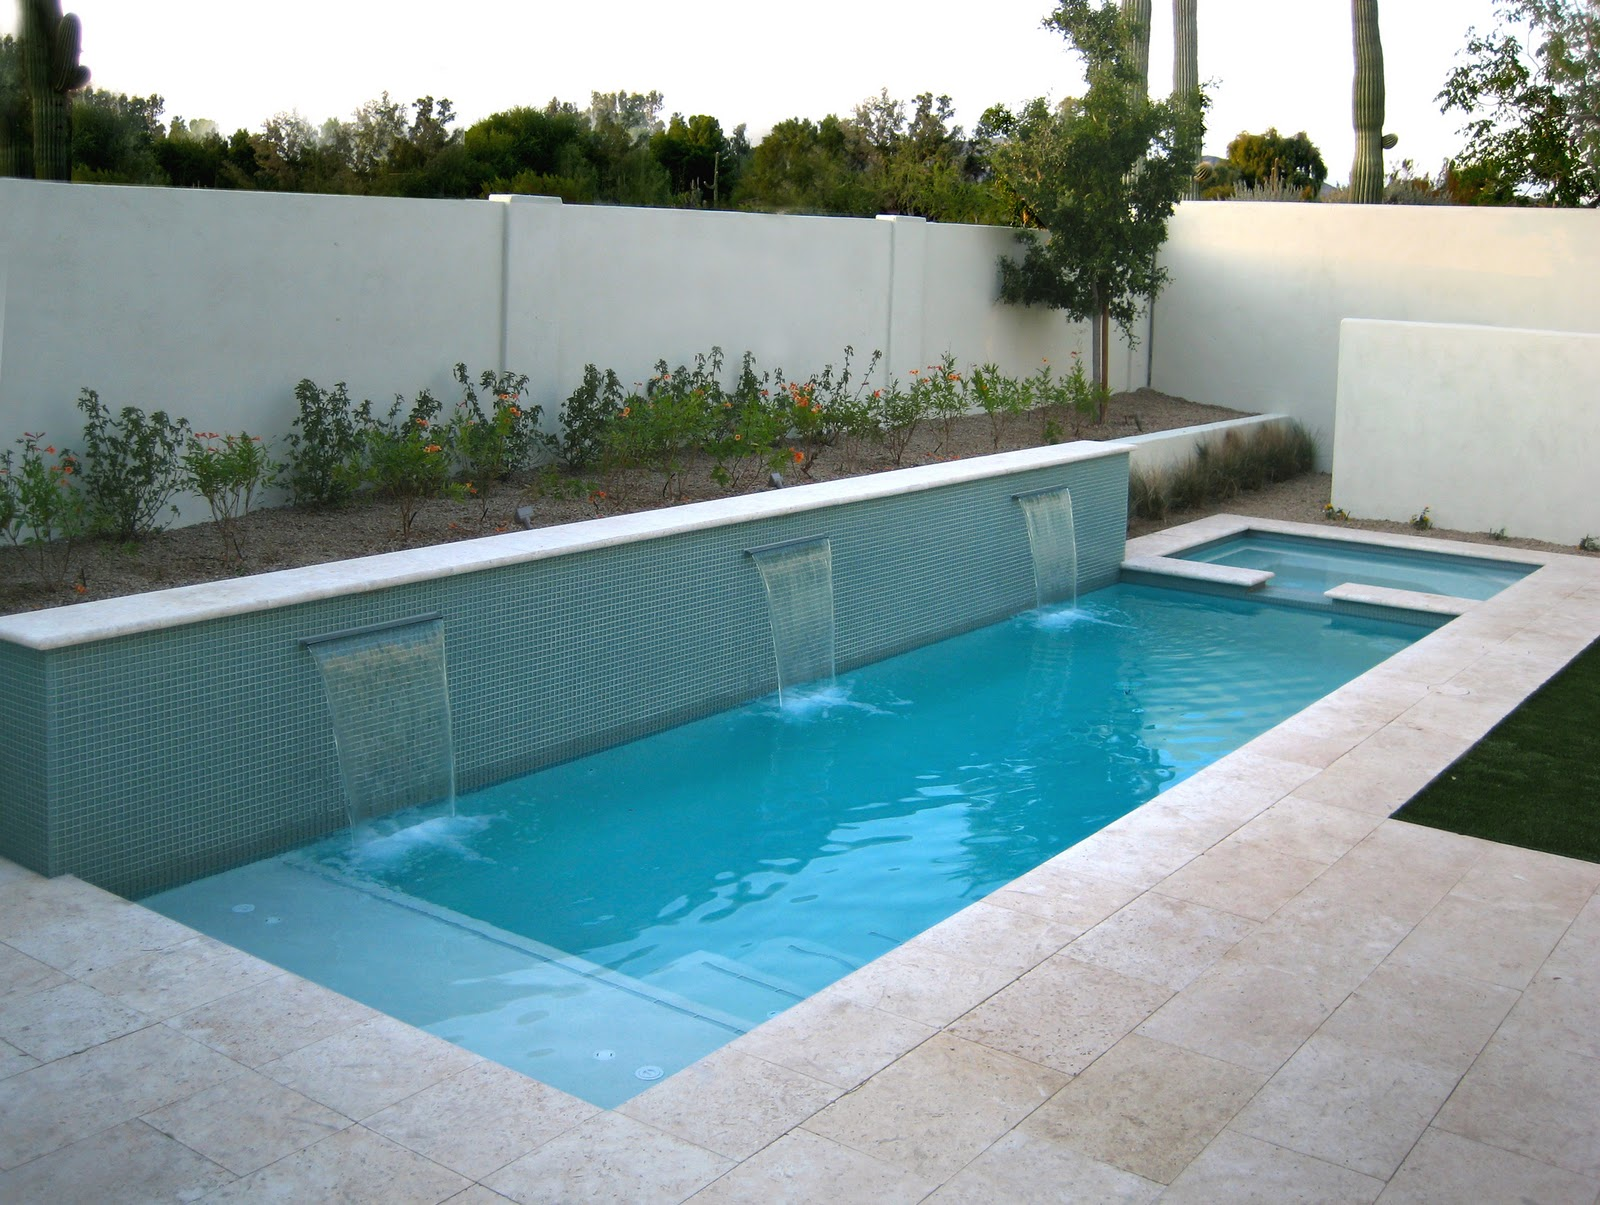 Feel free diy landscaping designs sacramento ca - Swimming pool landscape design ideas ...